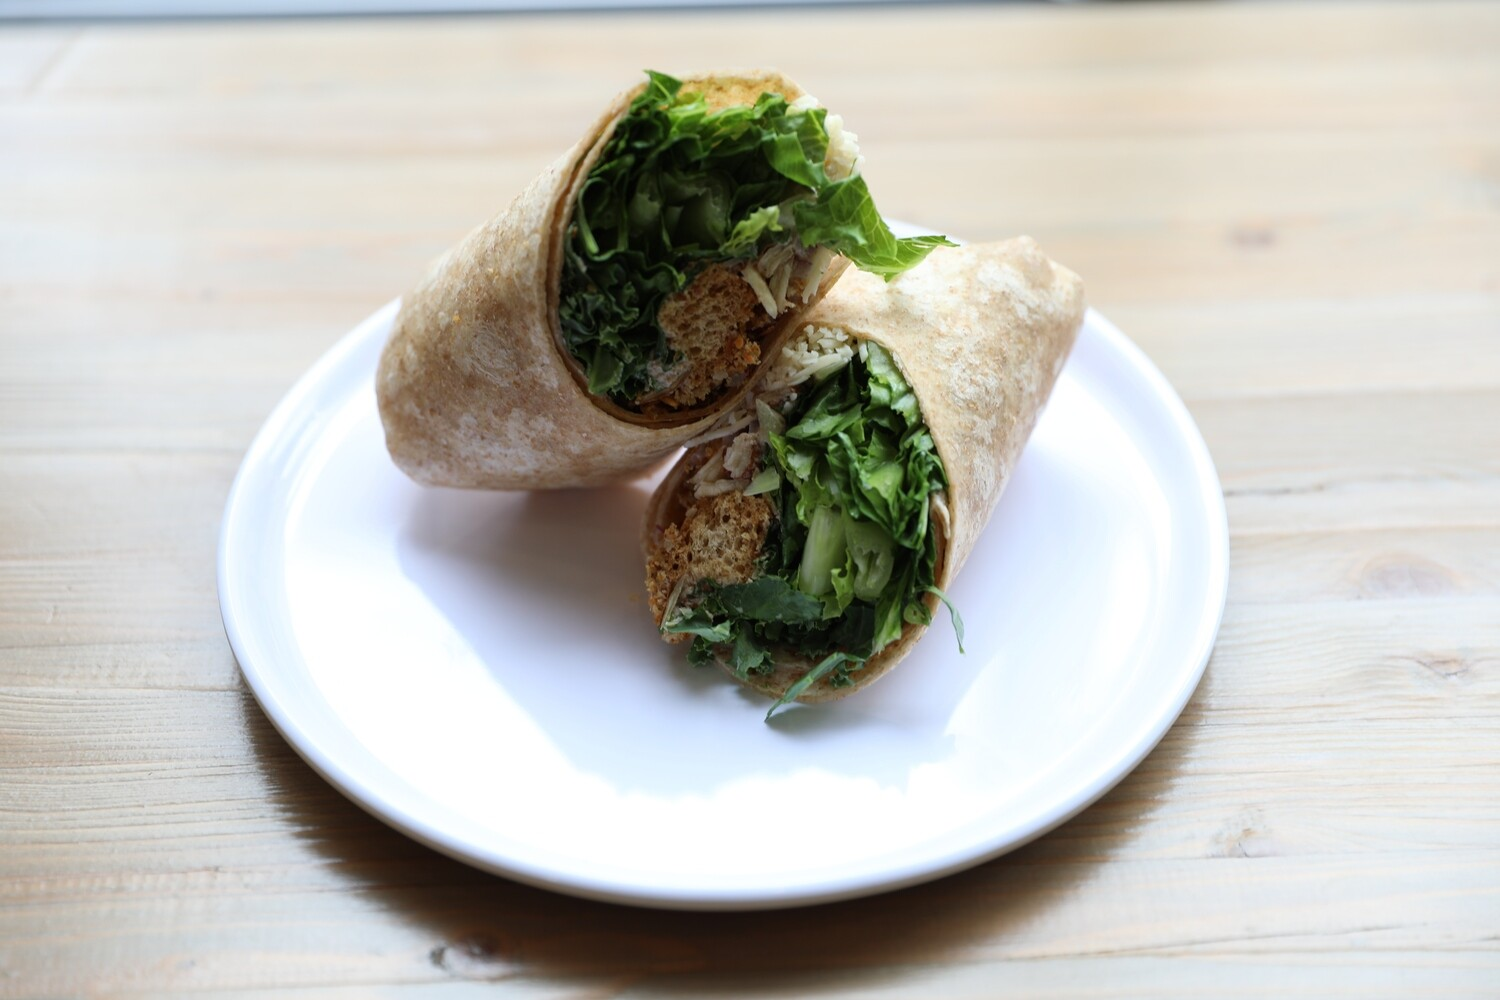 Spicy Kale Wrap